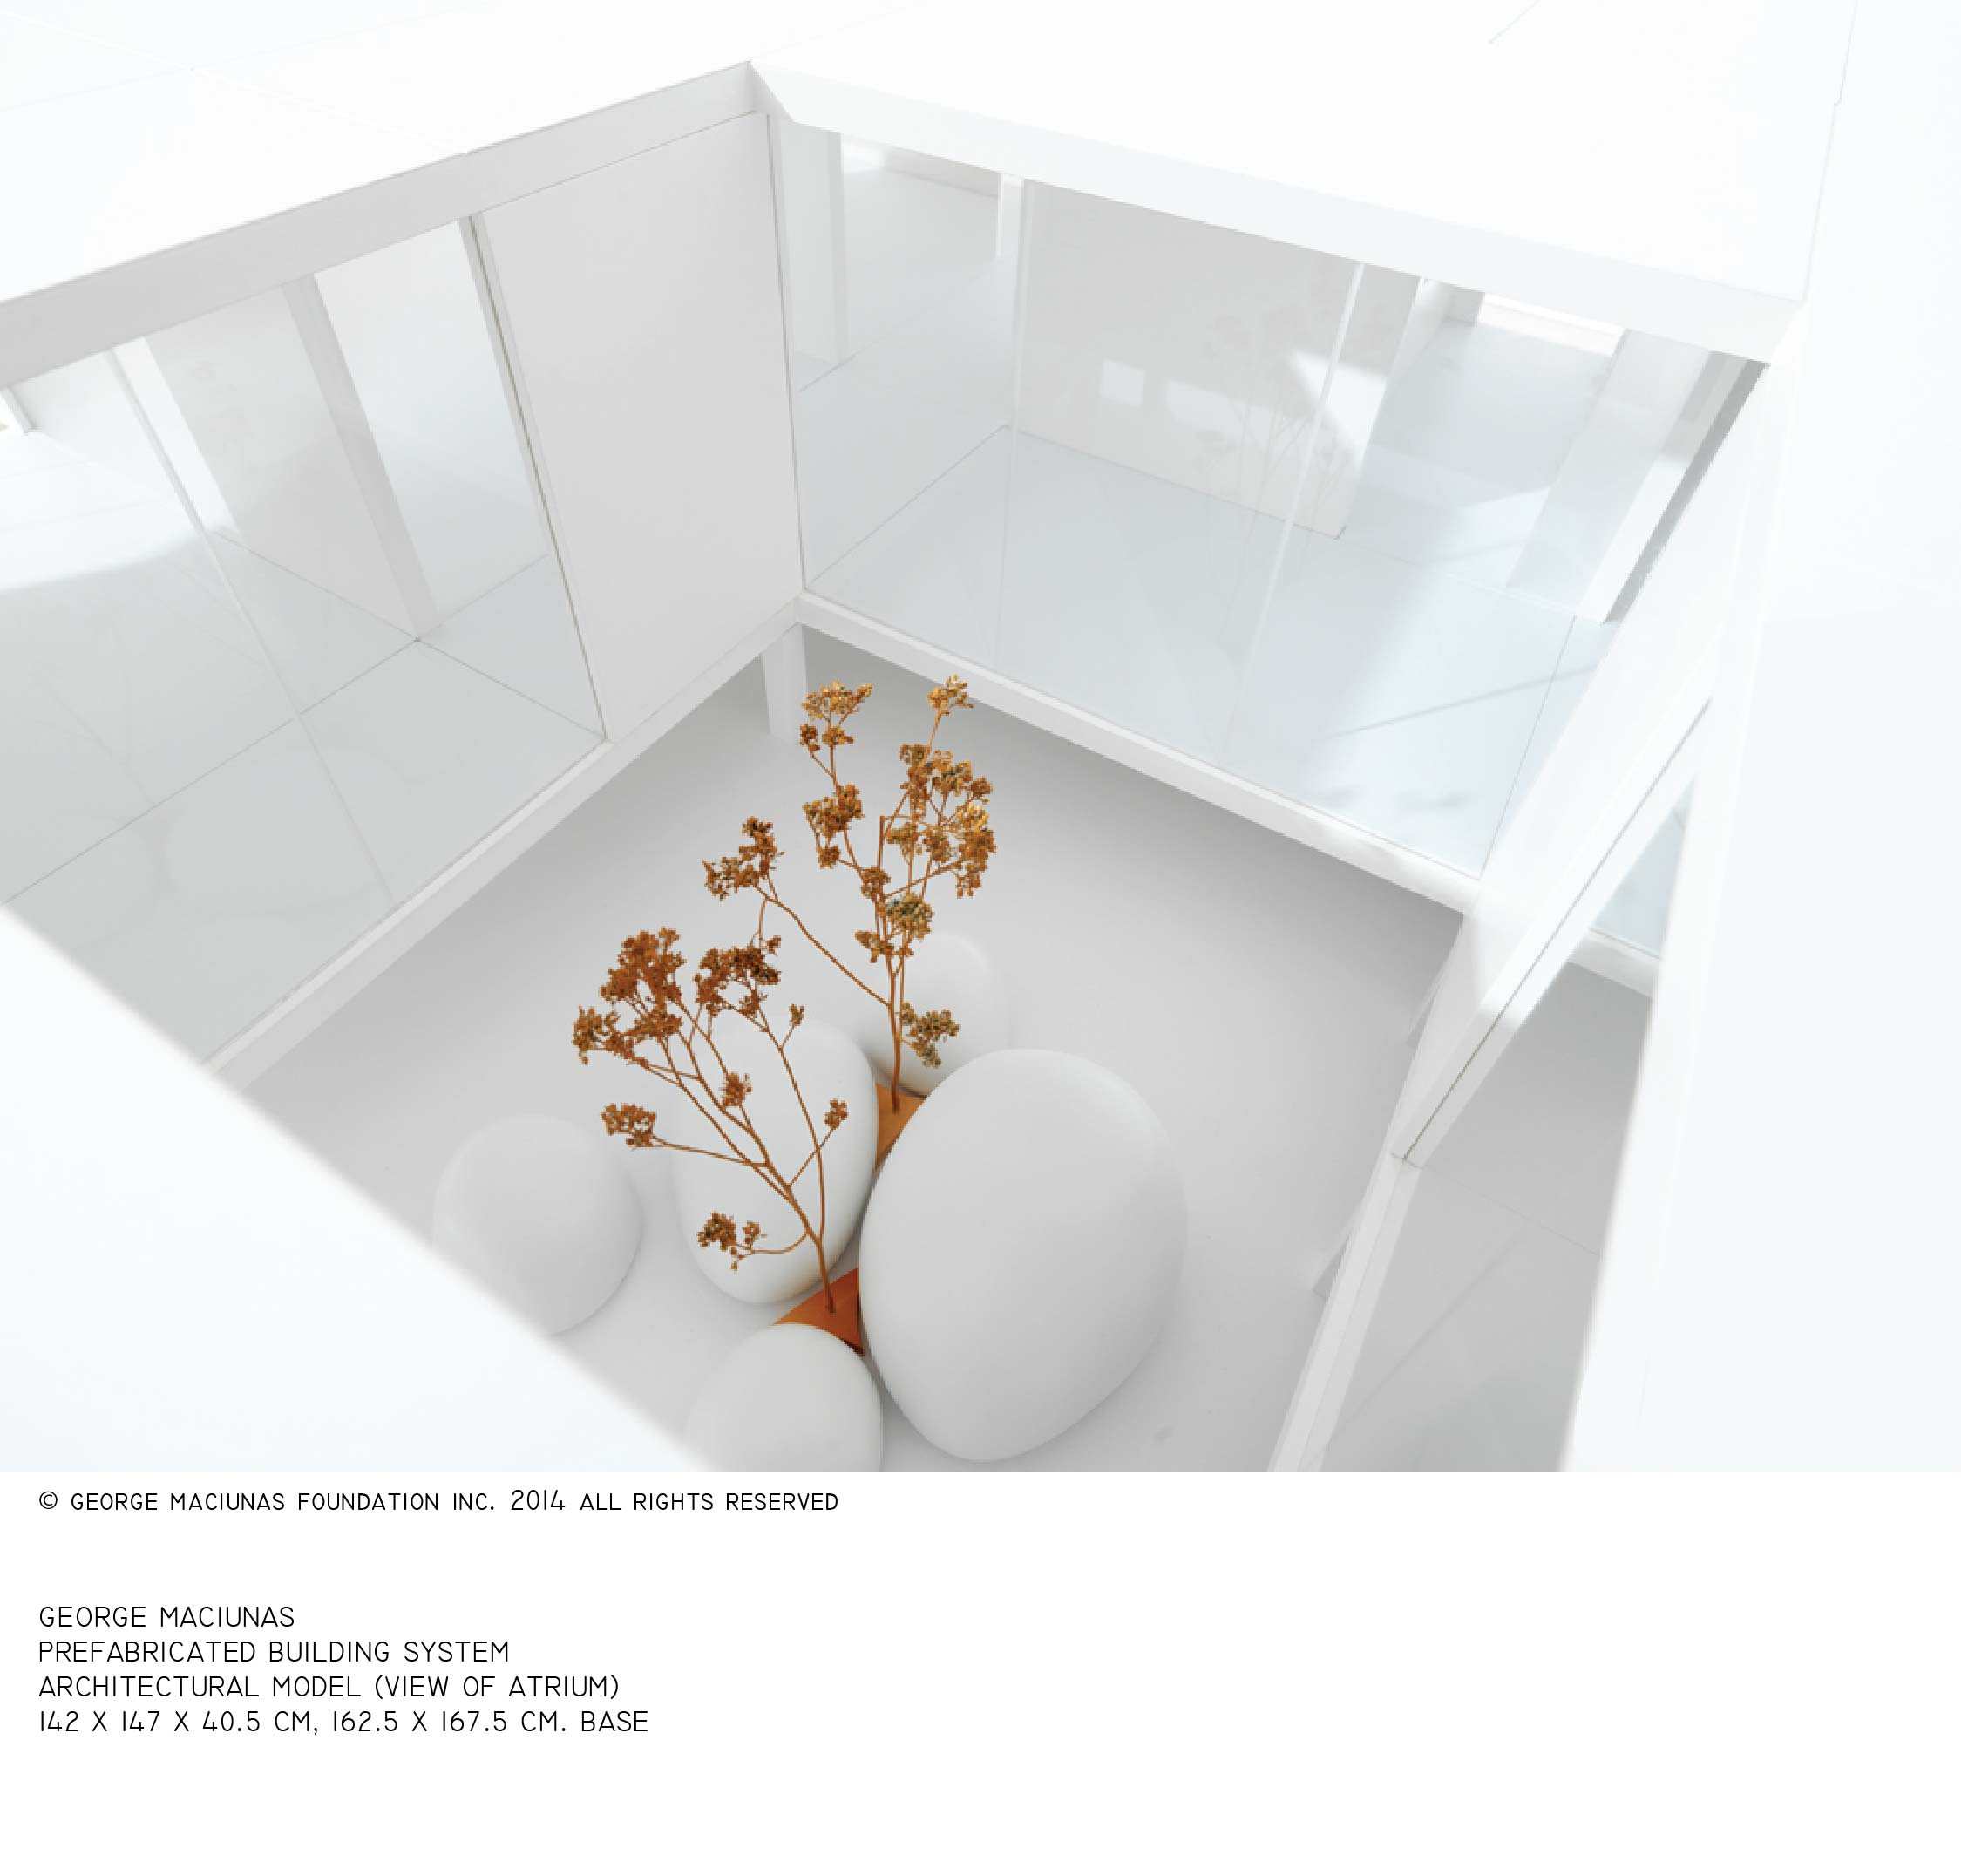 FLUXHOUSE ARCHITECTURAL MODEL (2)